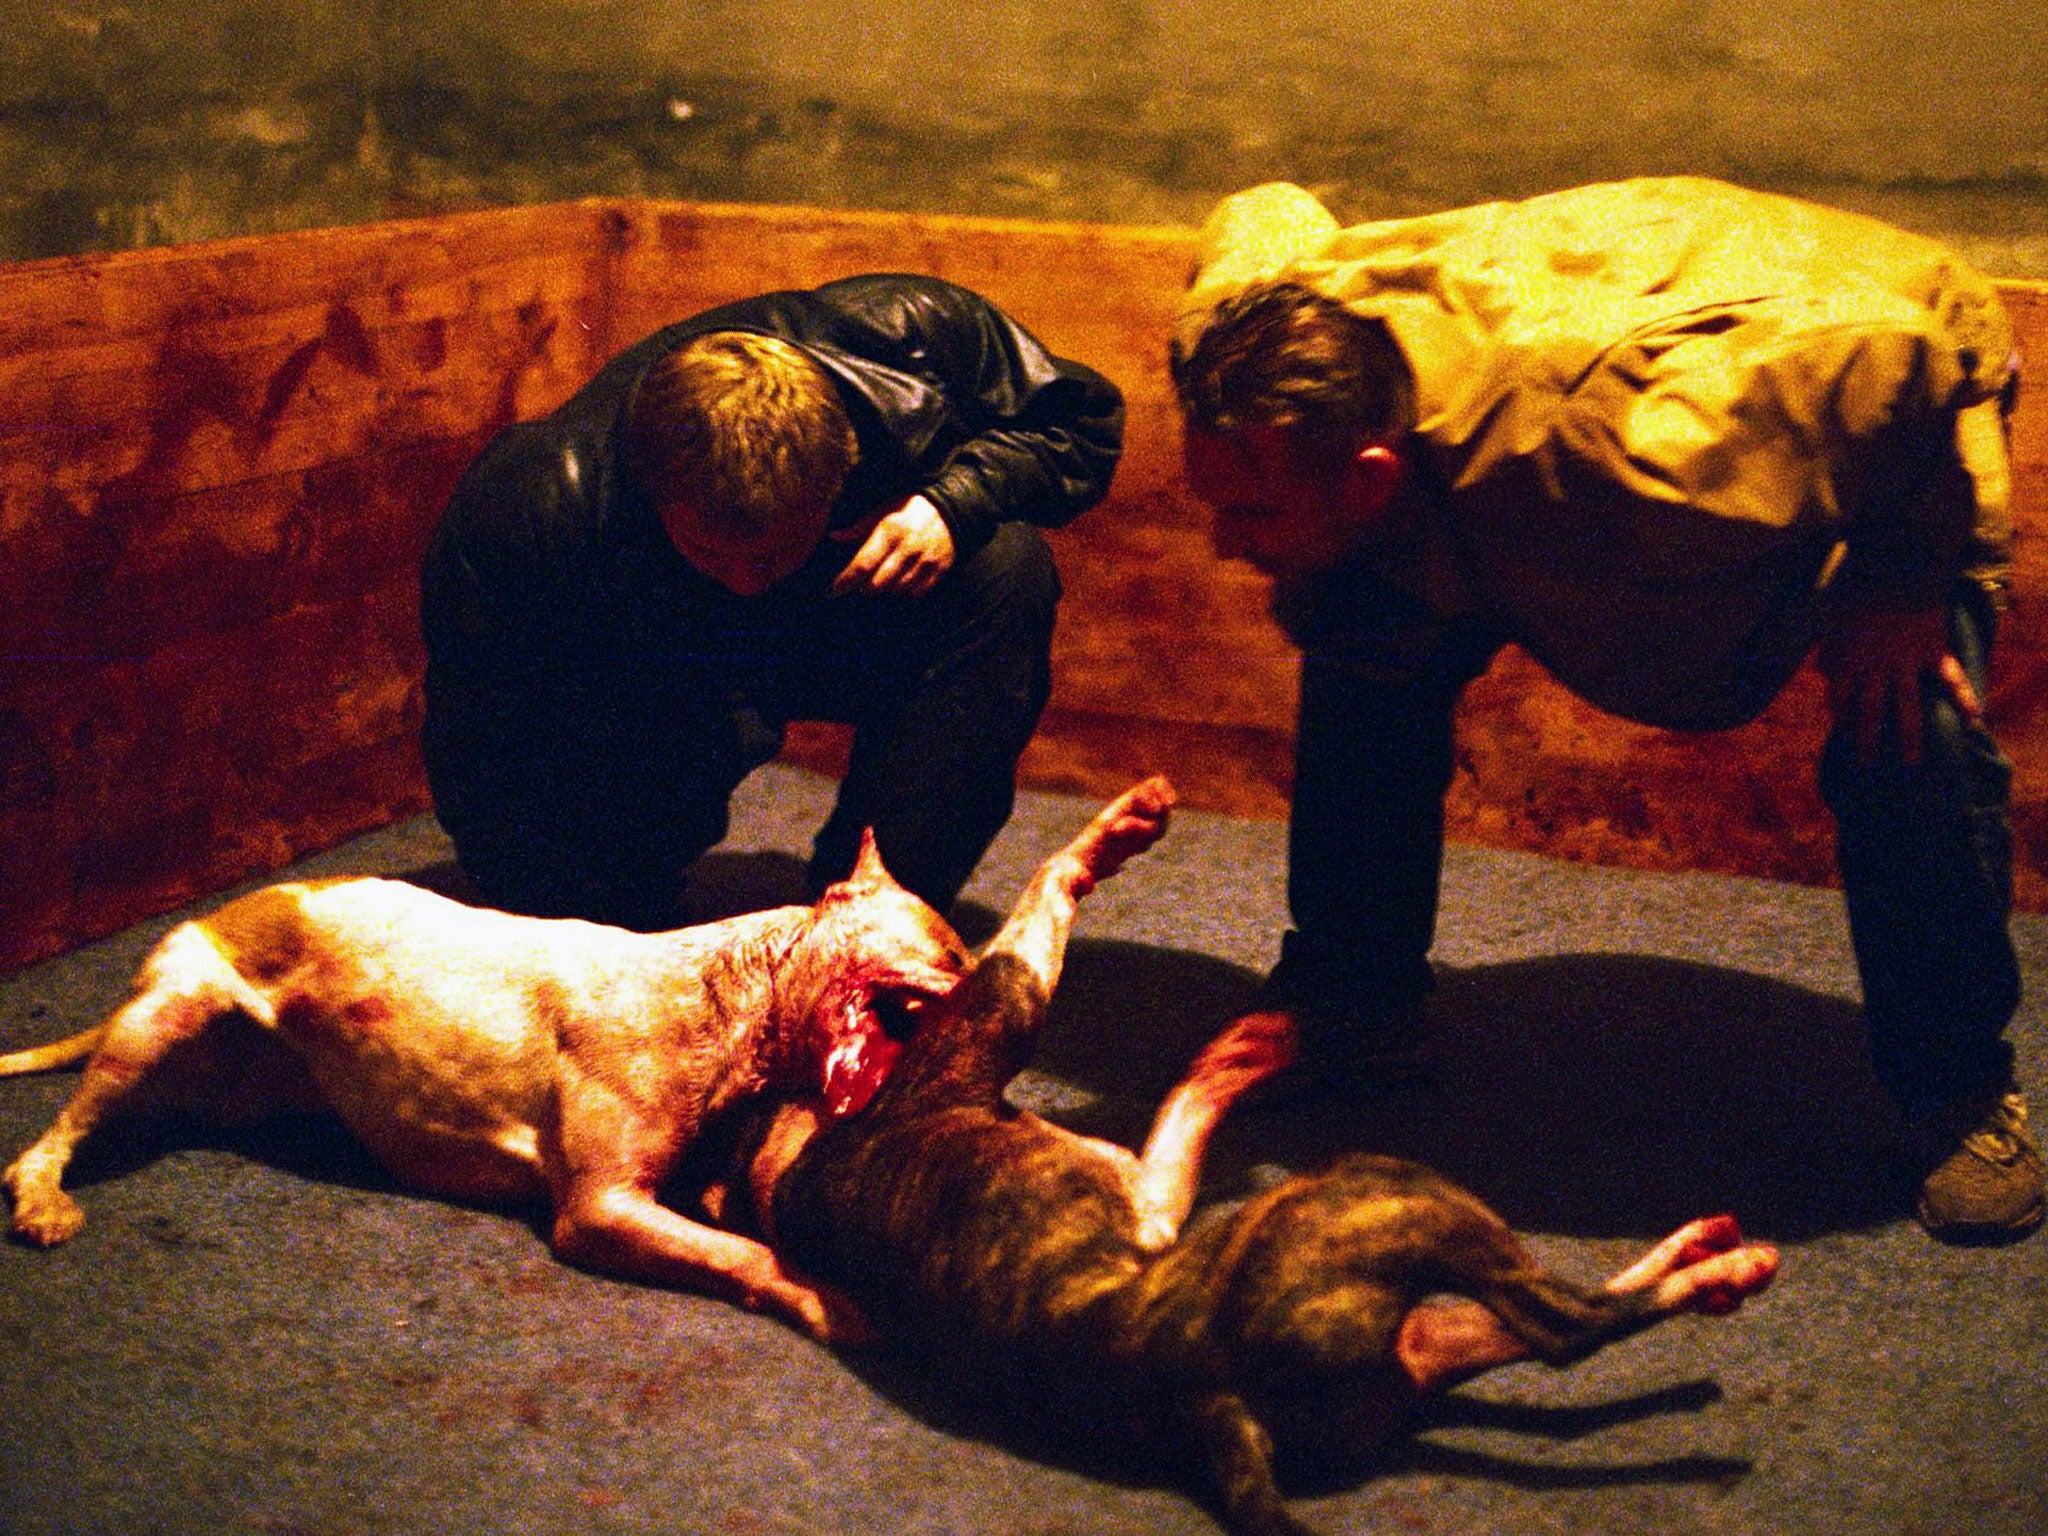 A Terrifying Encounter With The Brutal World Of Dog Fighting The